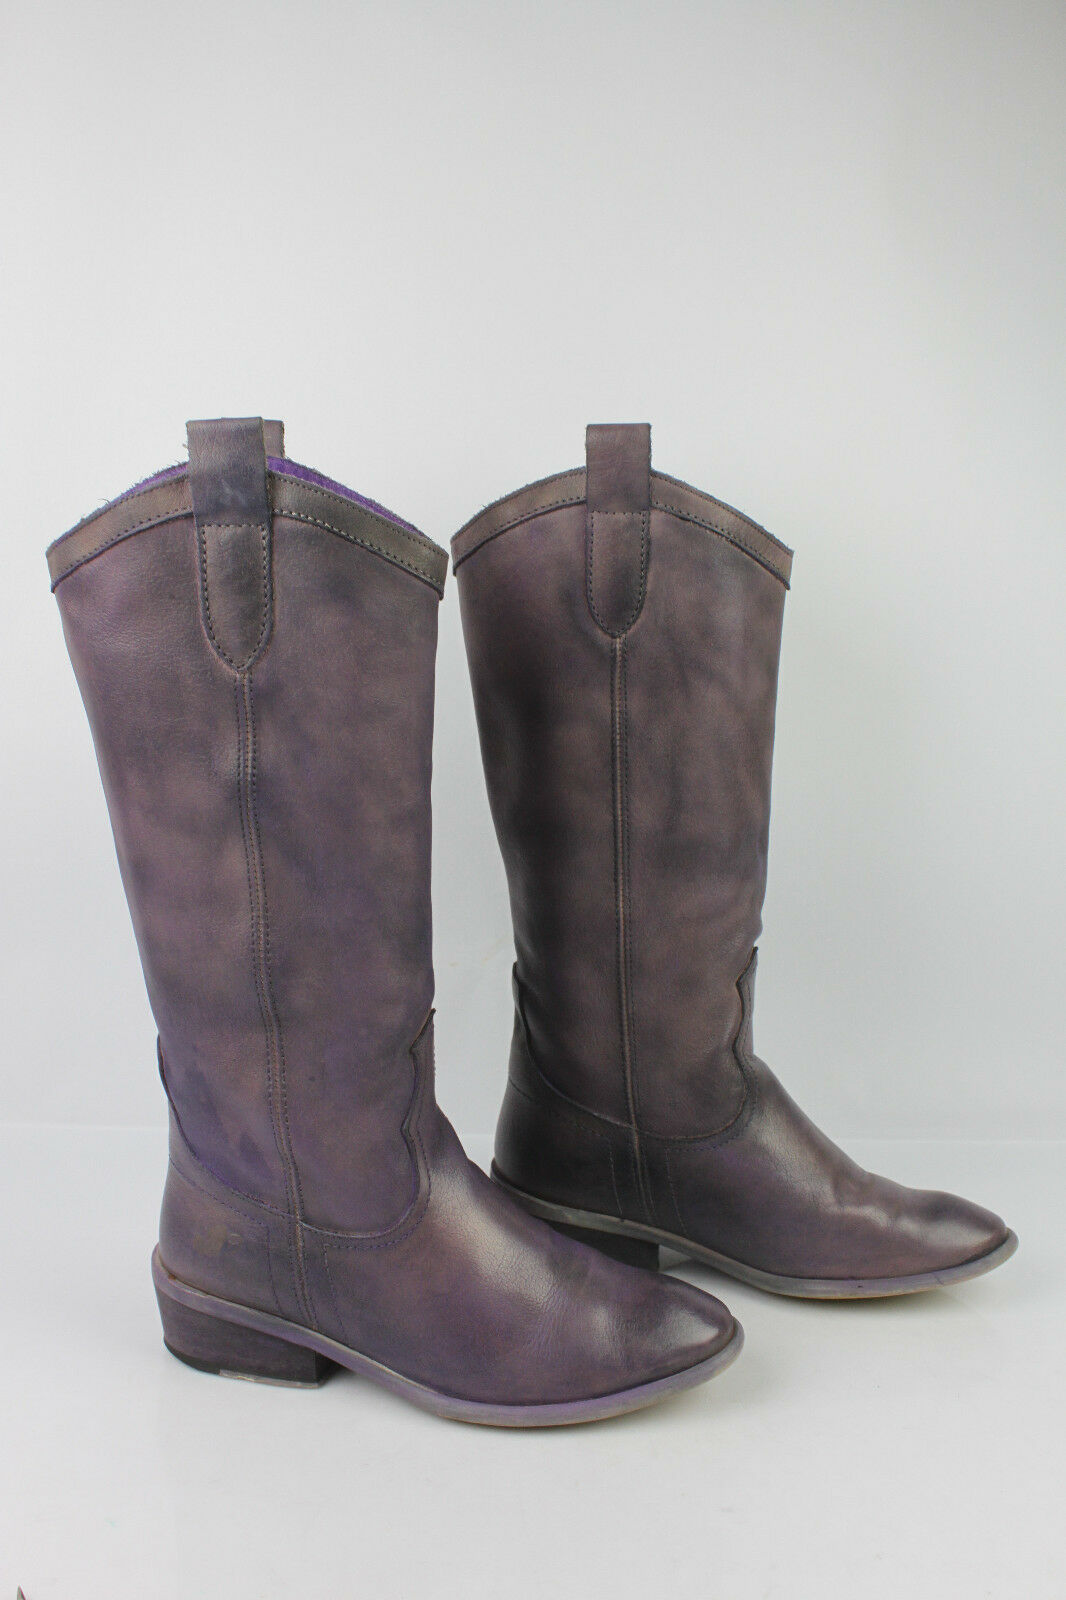 Leather Boots leather Purple Moderate slightly iridescent FELMINI T 36 BE